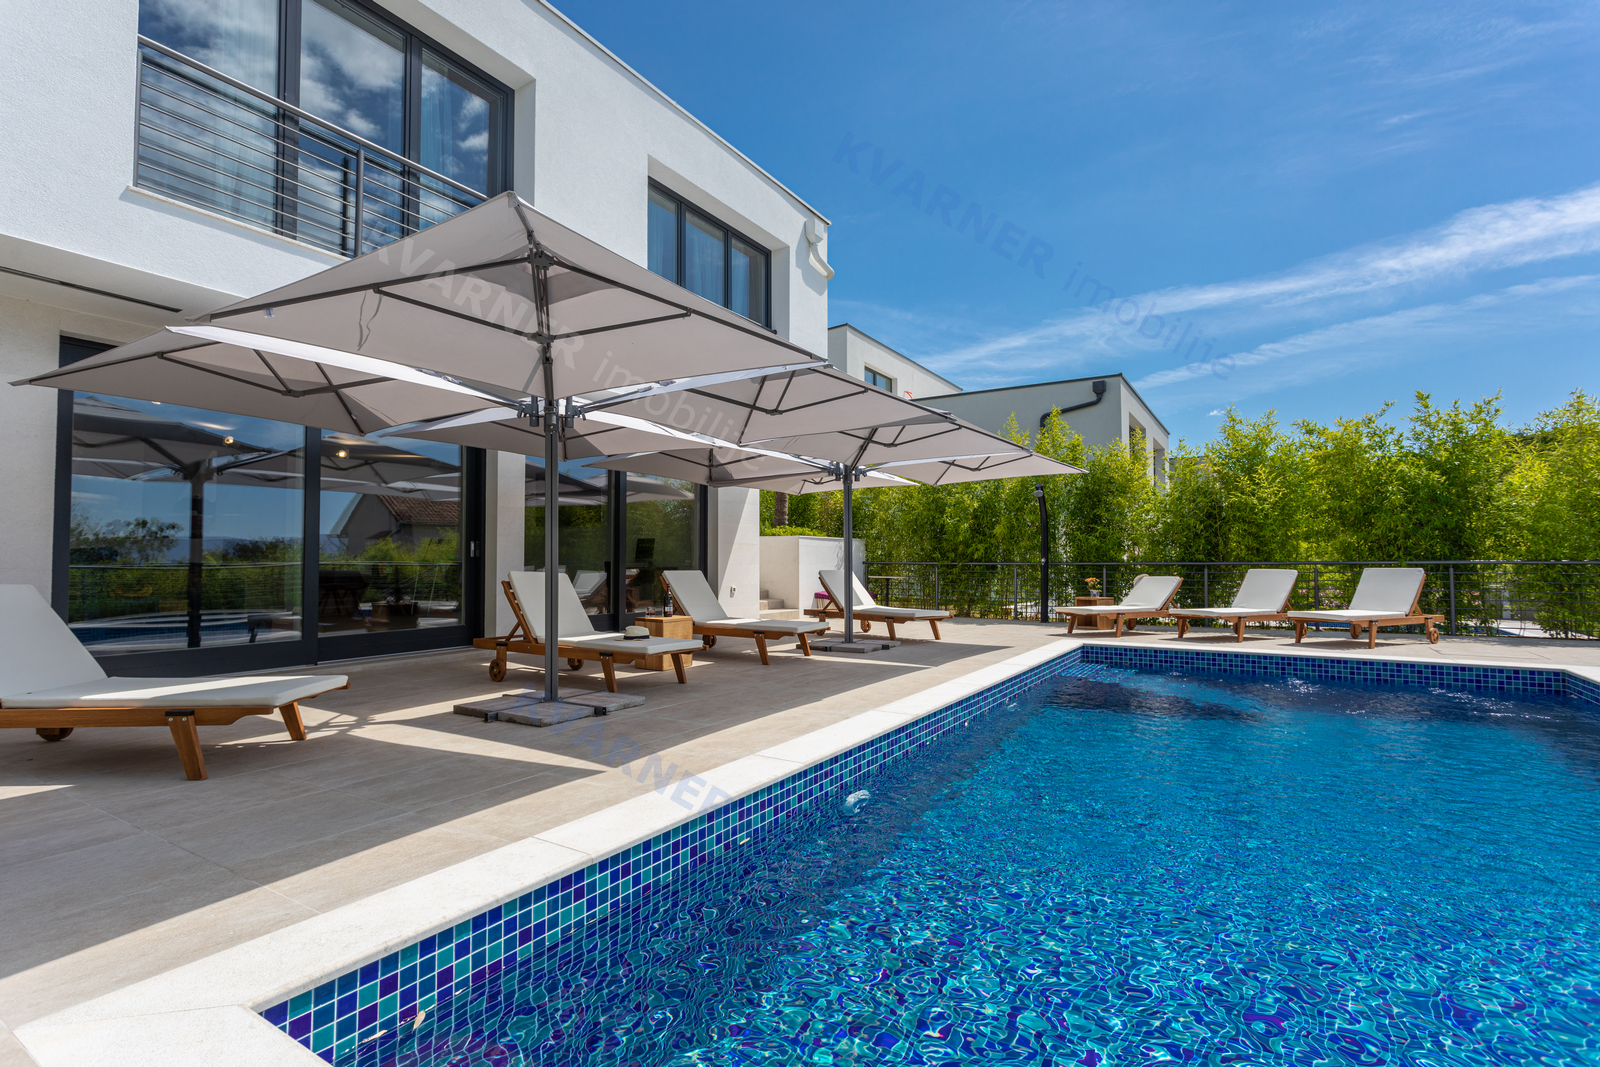 New modern villa with pool and sea view | Kvarner imobilije